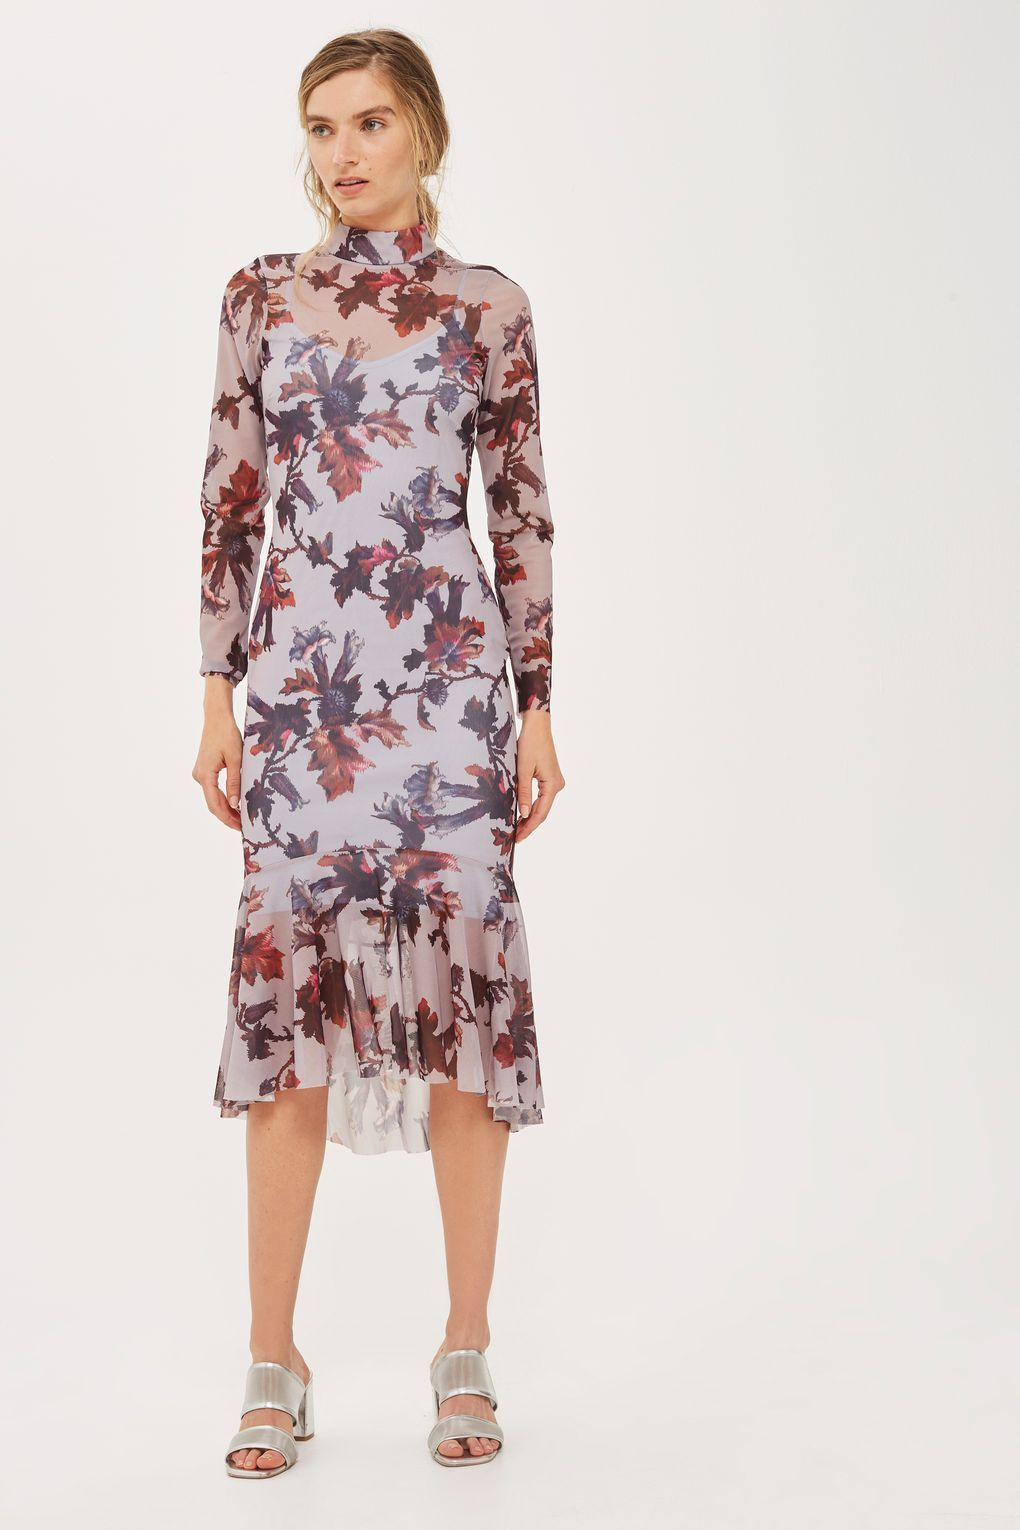 What to wear to a winter wedding | Winter wedding guests, Winter ...